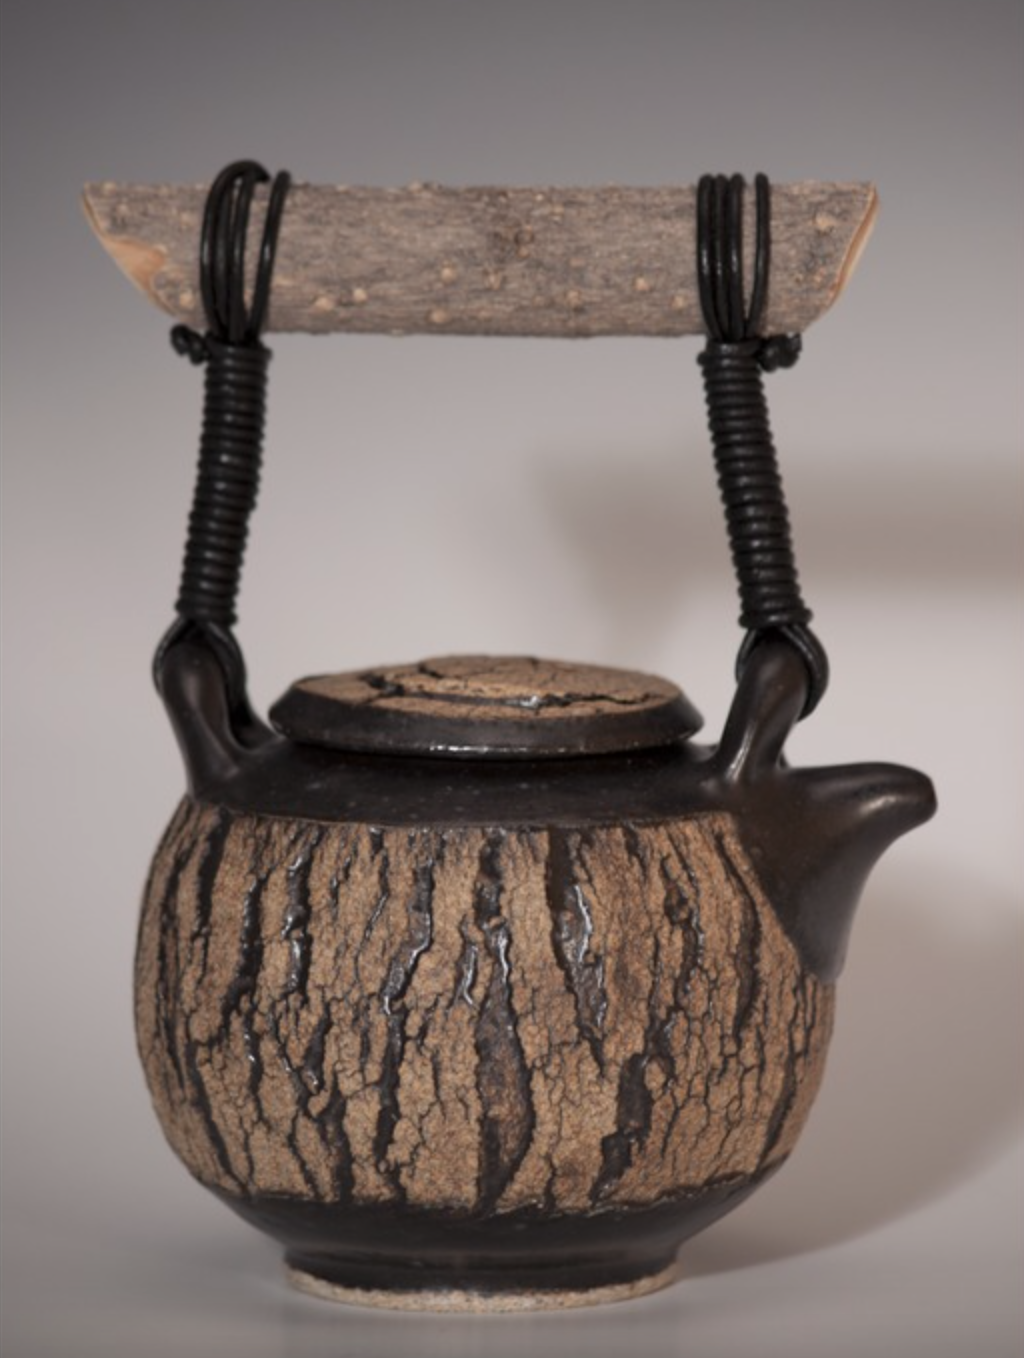 Shane Porter - Wheel thrown, hand-built, and sculpted clay, glazed in a variety of finishes and fired. Functional work as well as decorative and outdoor art.